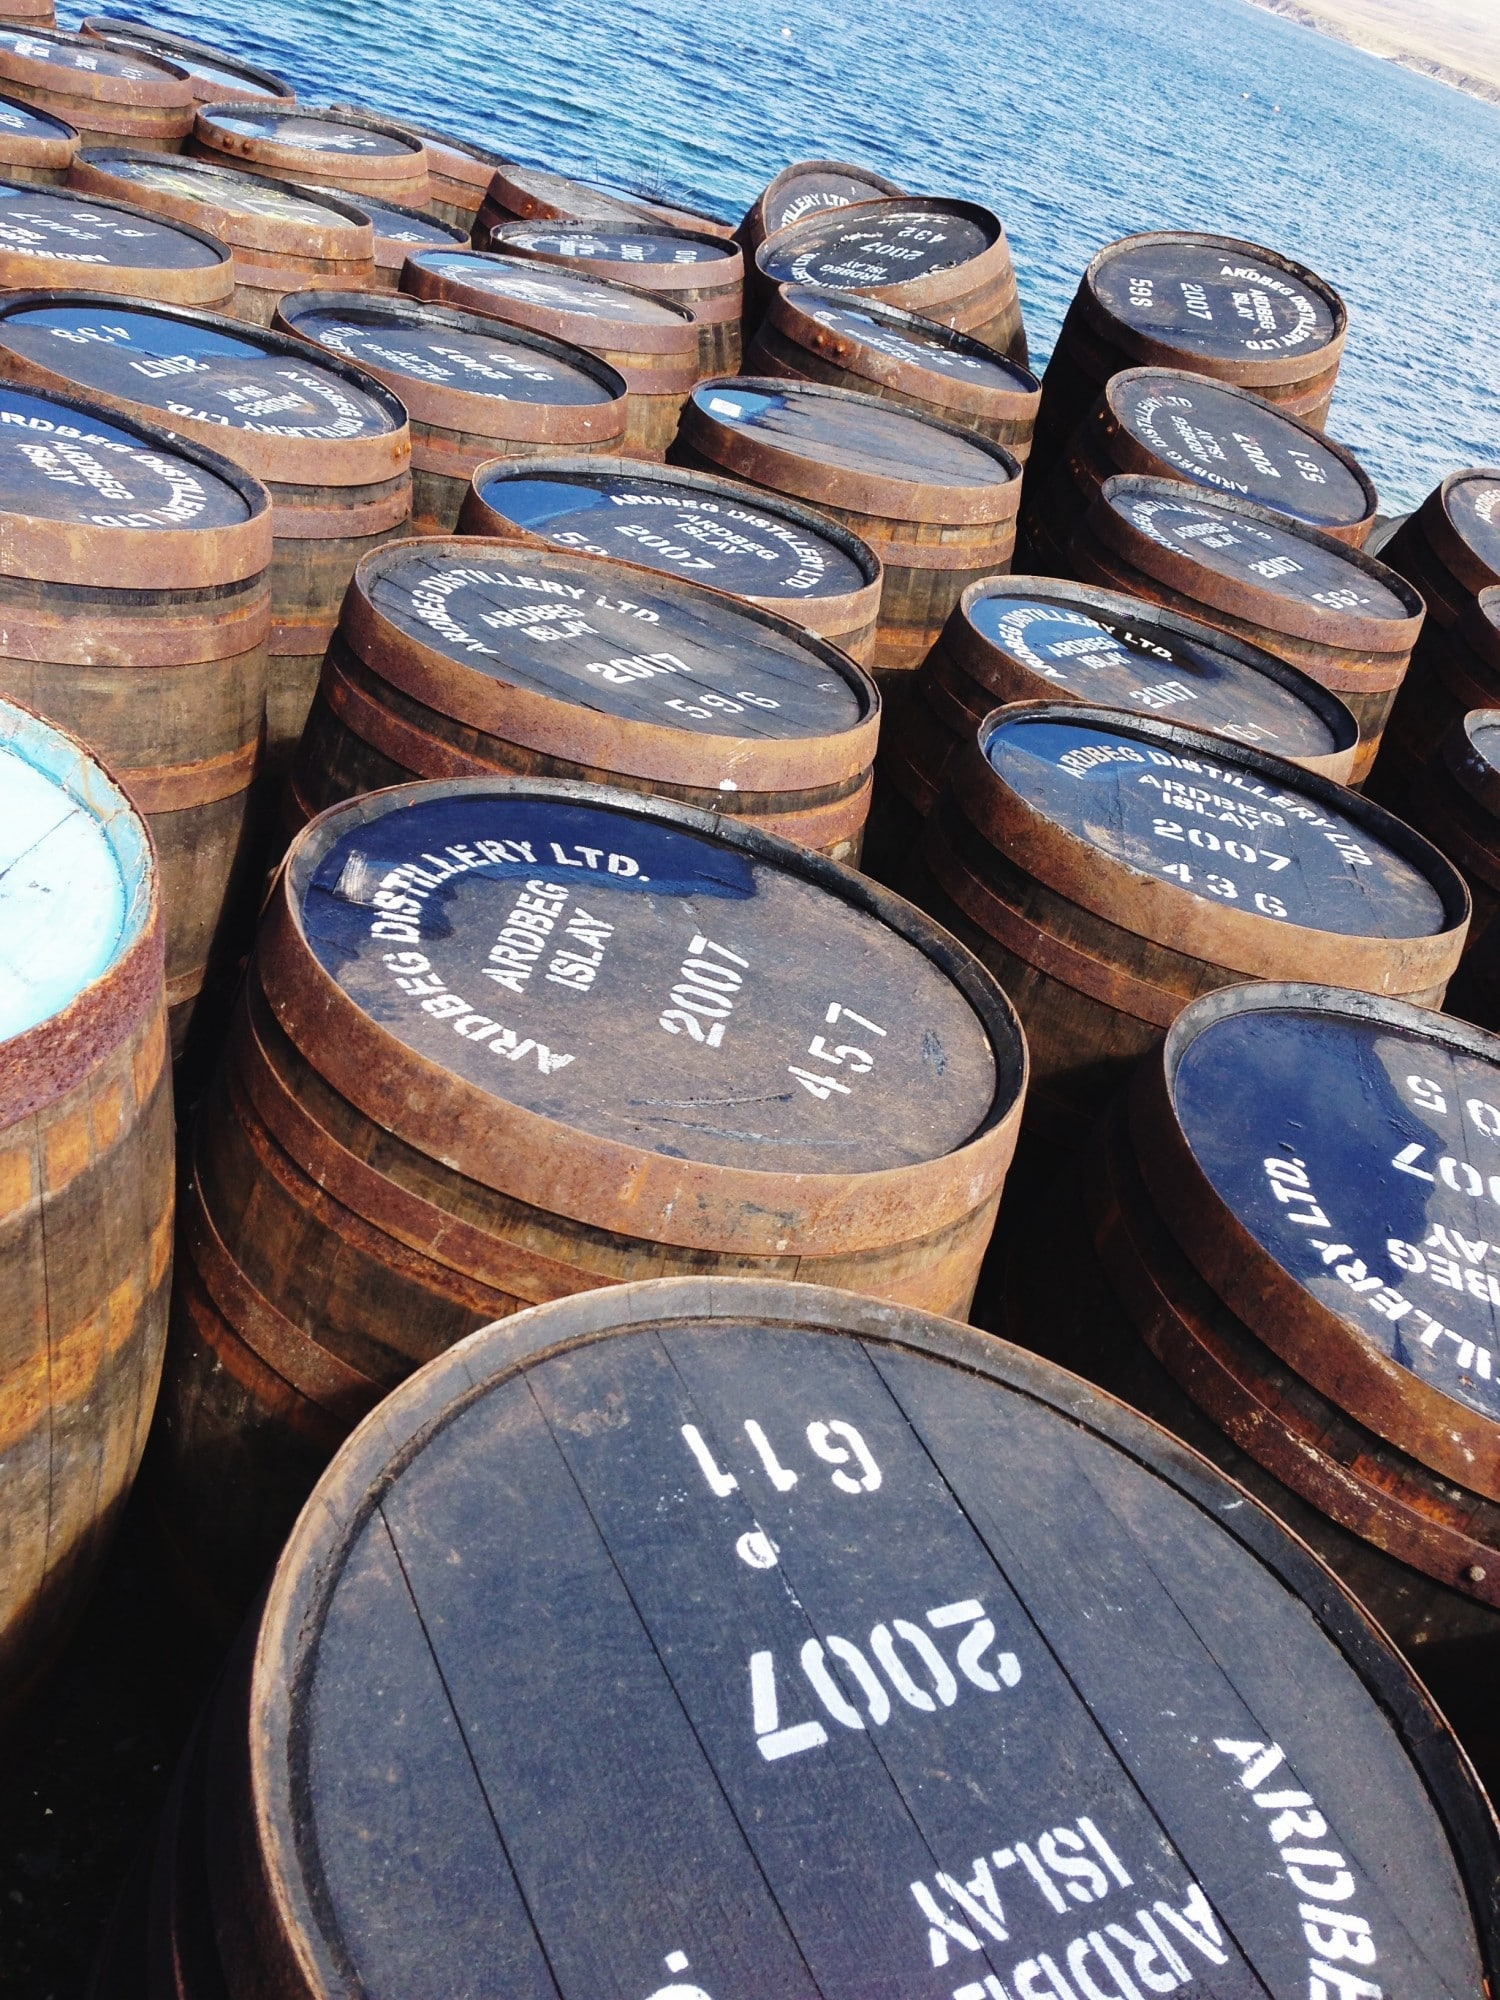 Islay Whisky Festival - Casks at Lagavulin